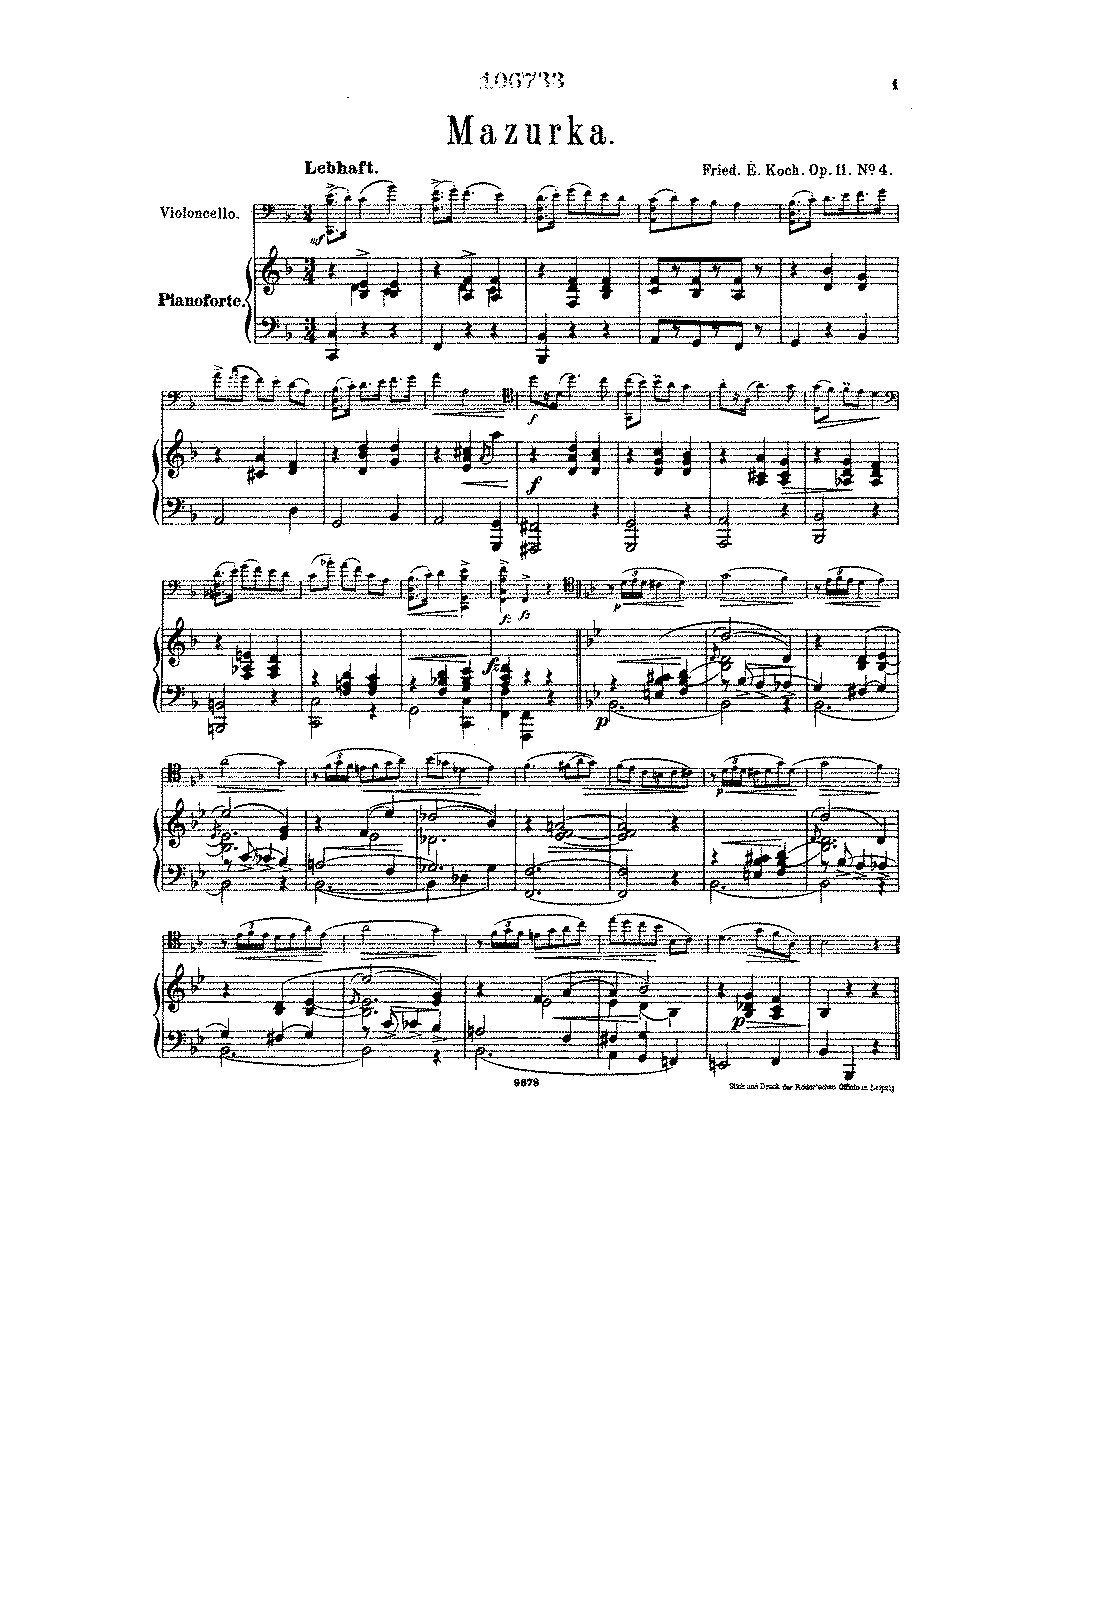 PMLP137734-Koch - Mazurka for Cello and Piano Op11 No4 (from 4 Tanzstucke) score.pdf